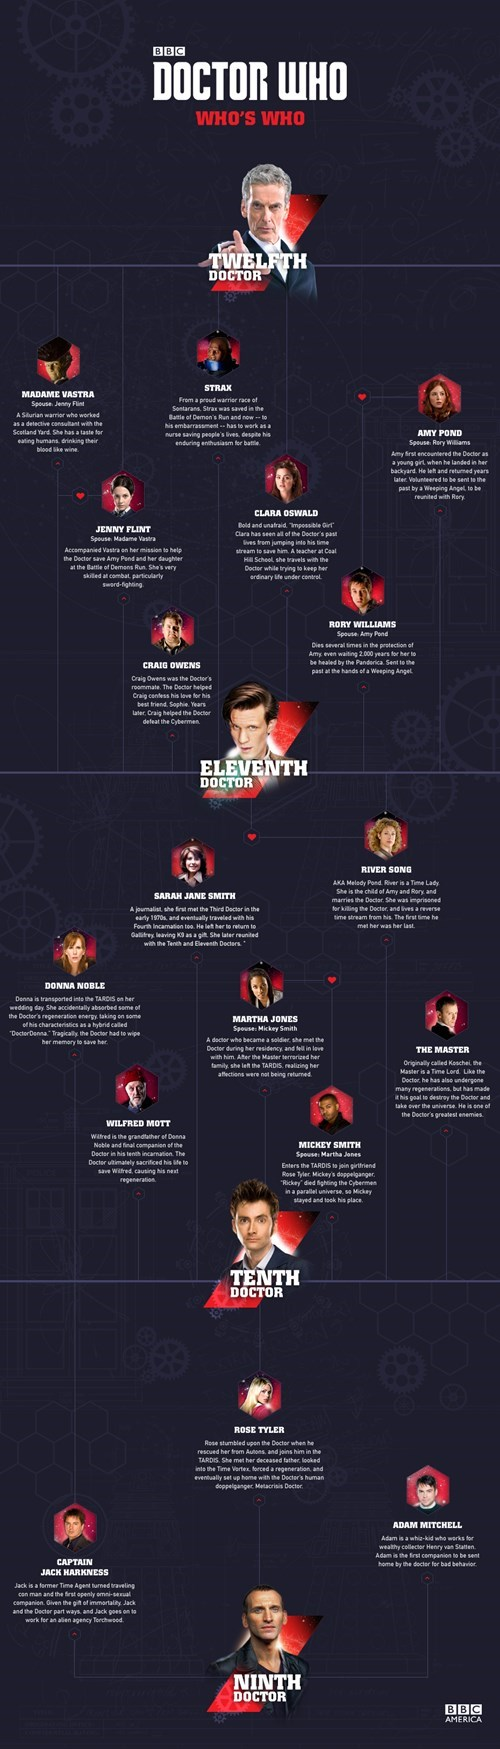 the doctor companion infographic - 8362923520